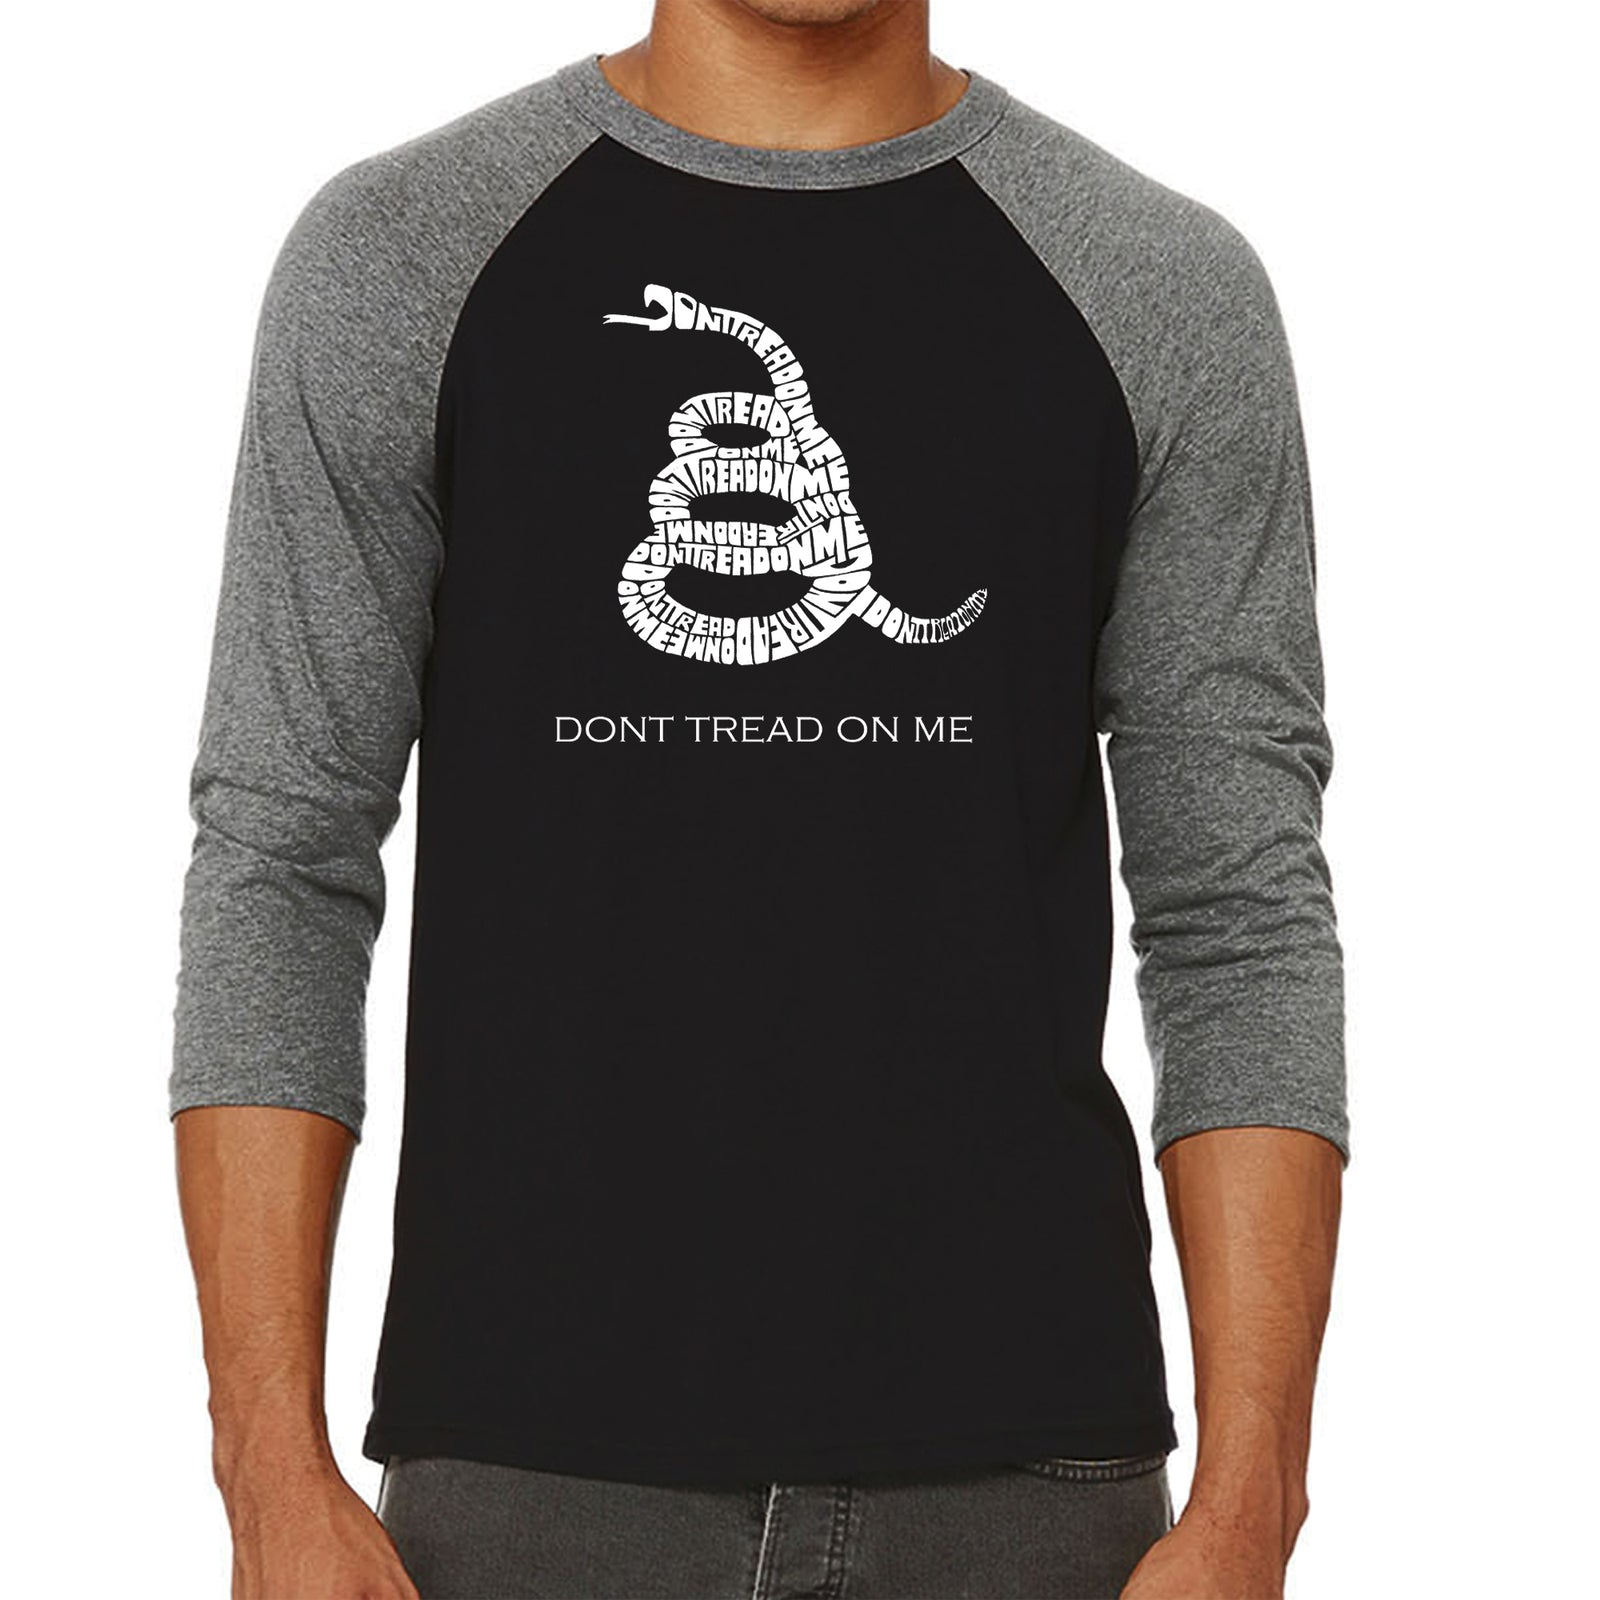 Men's Raglan Baseball Word Art T-shirt - DONT TREAD ON ME